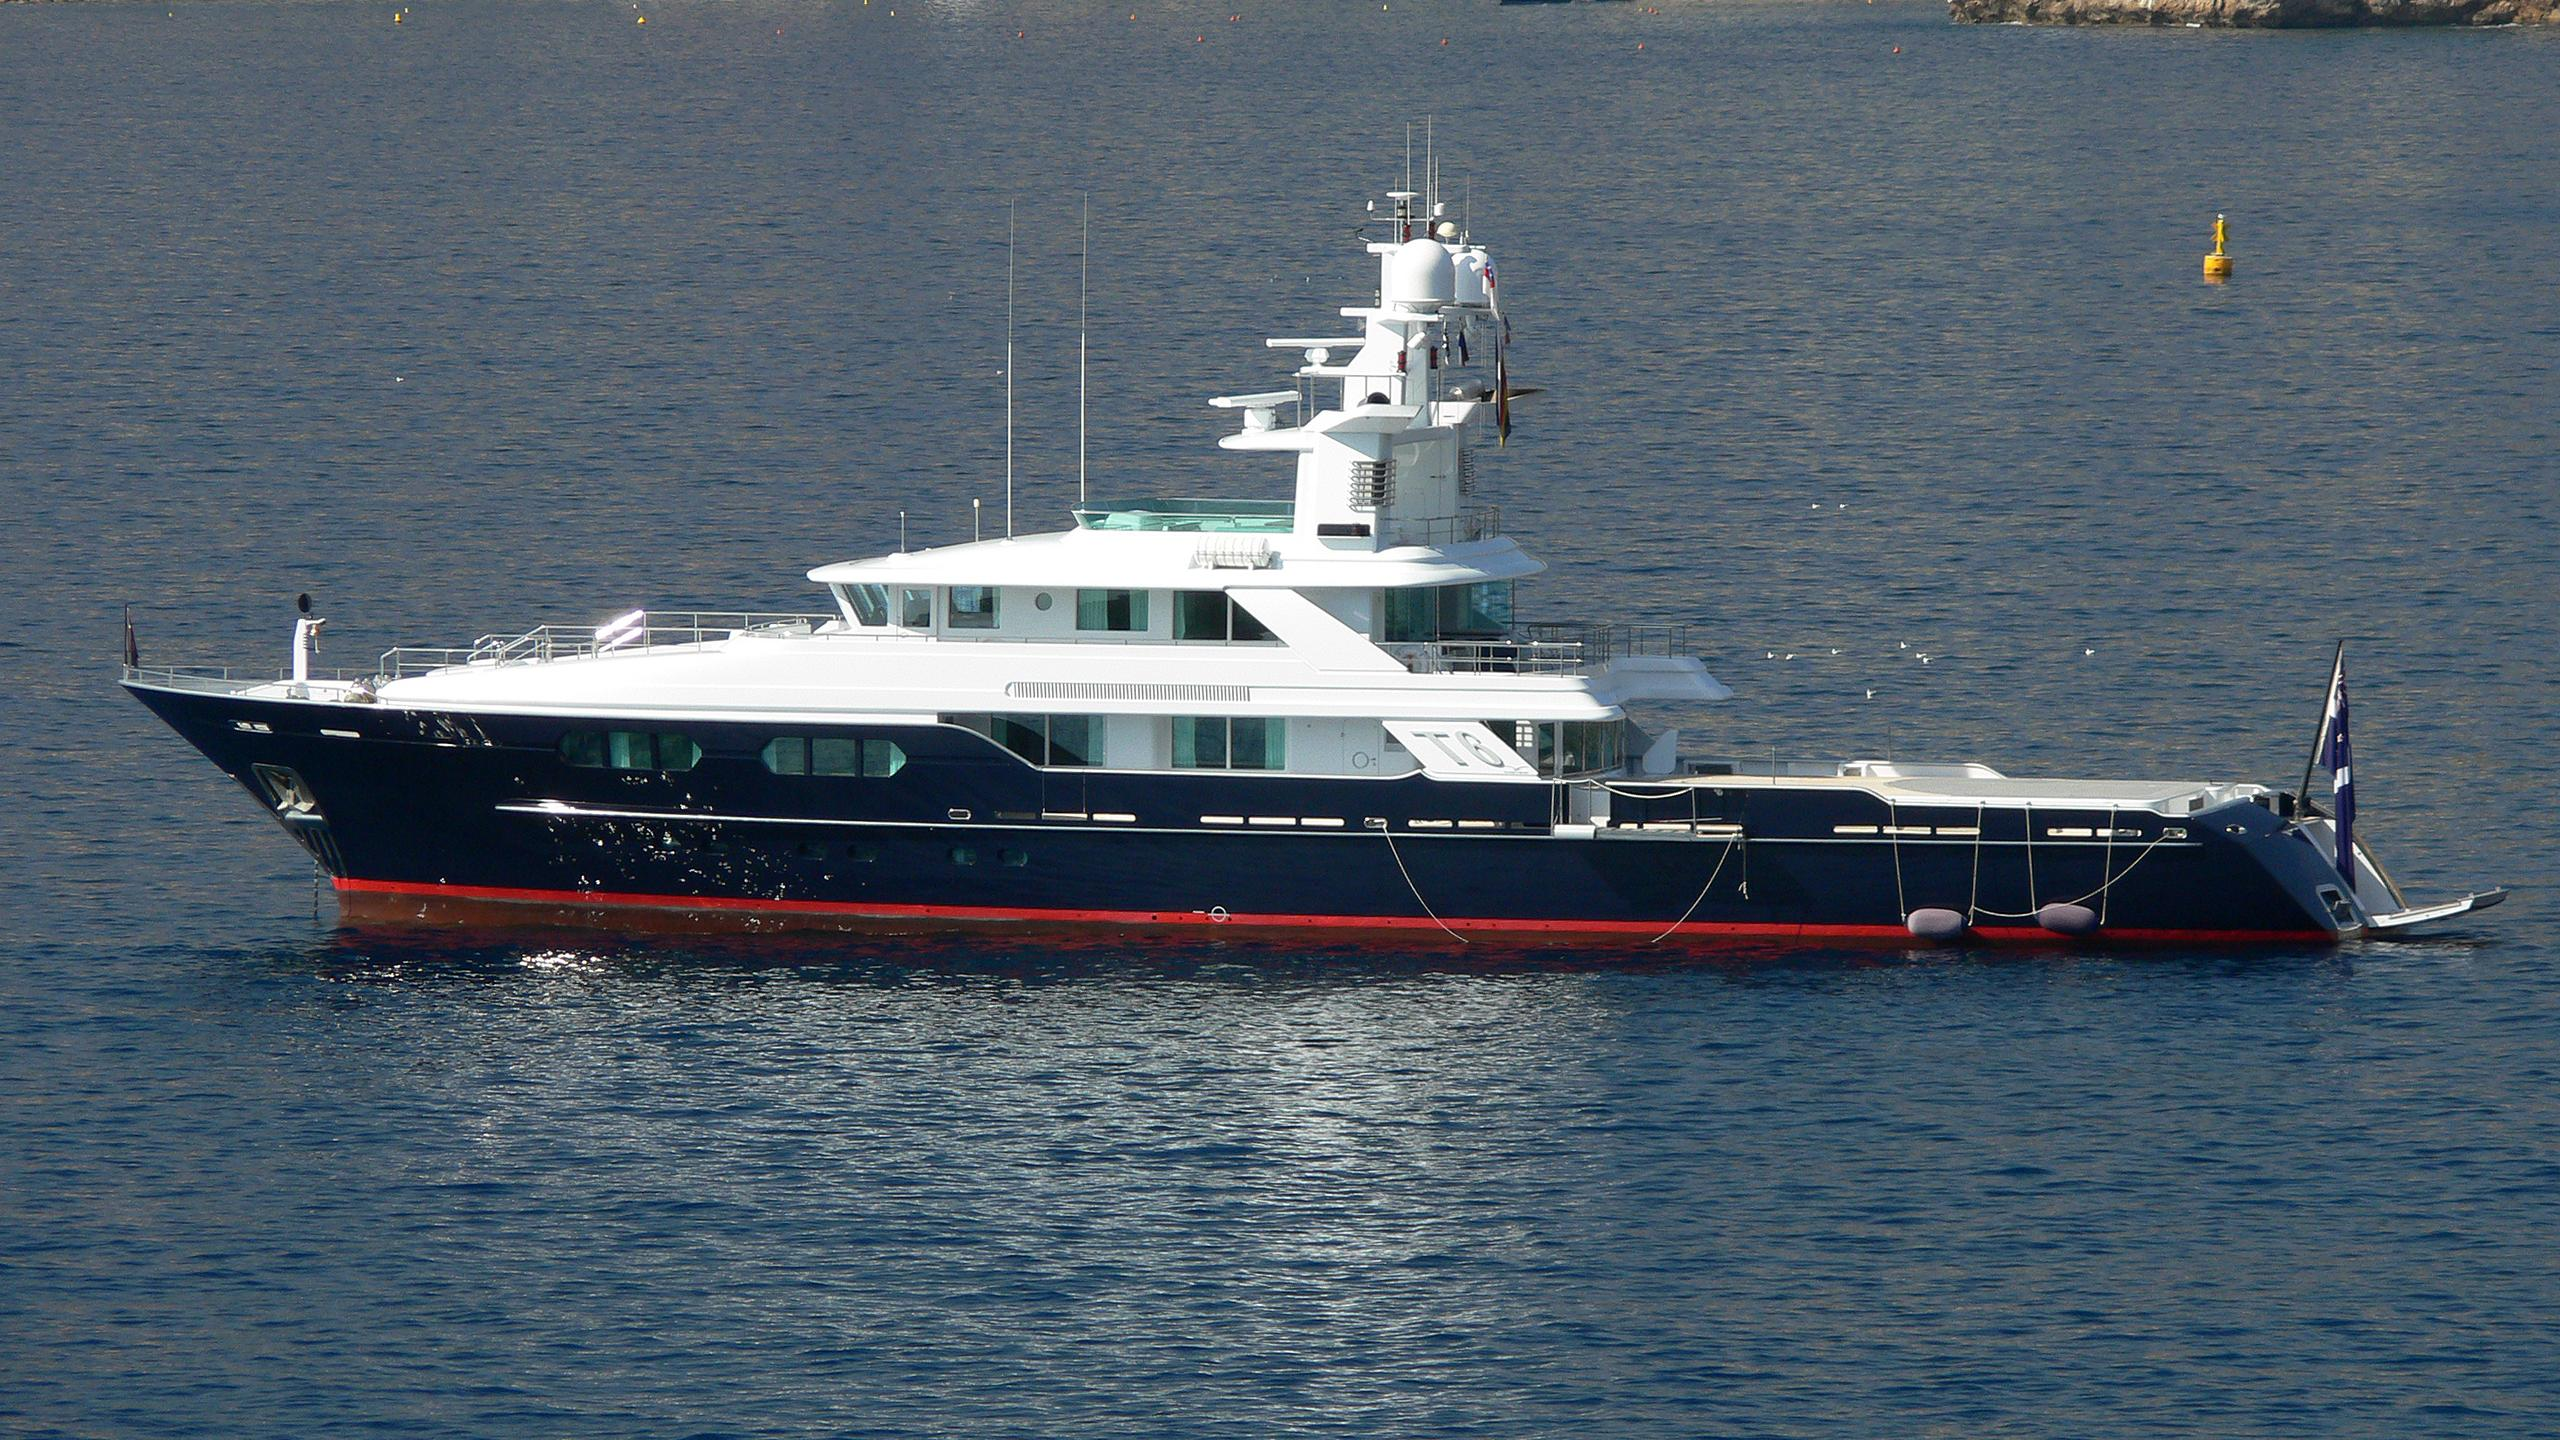 t6-explorer-yacht-flyghtship-2006-49m-profile